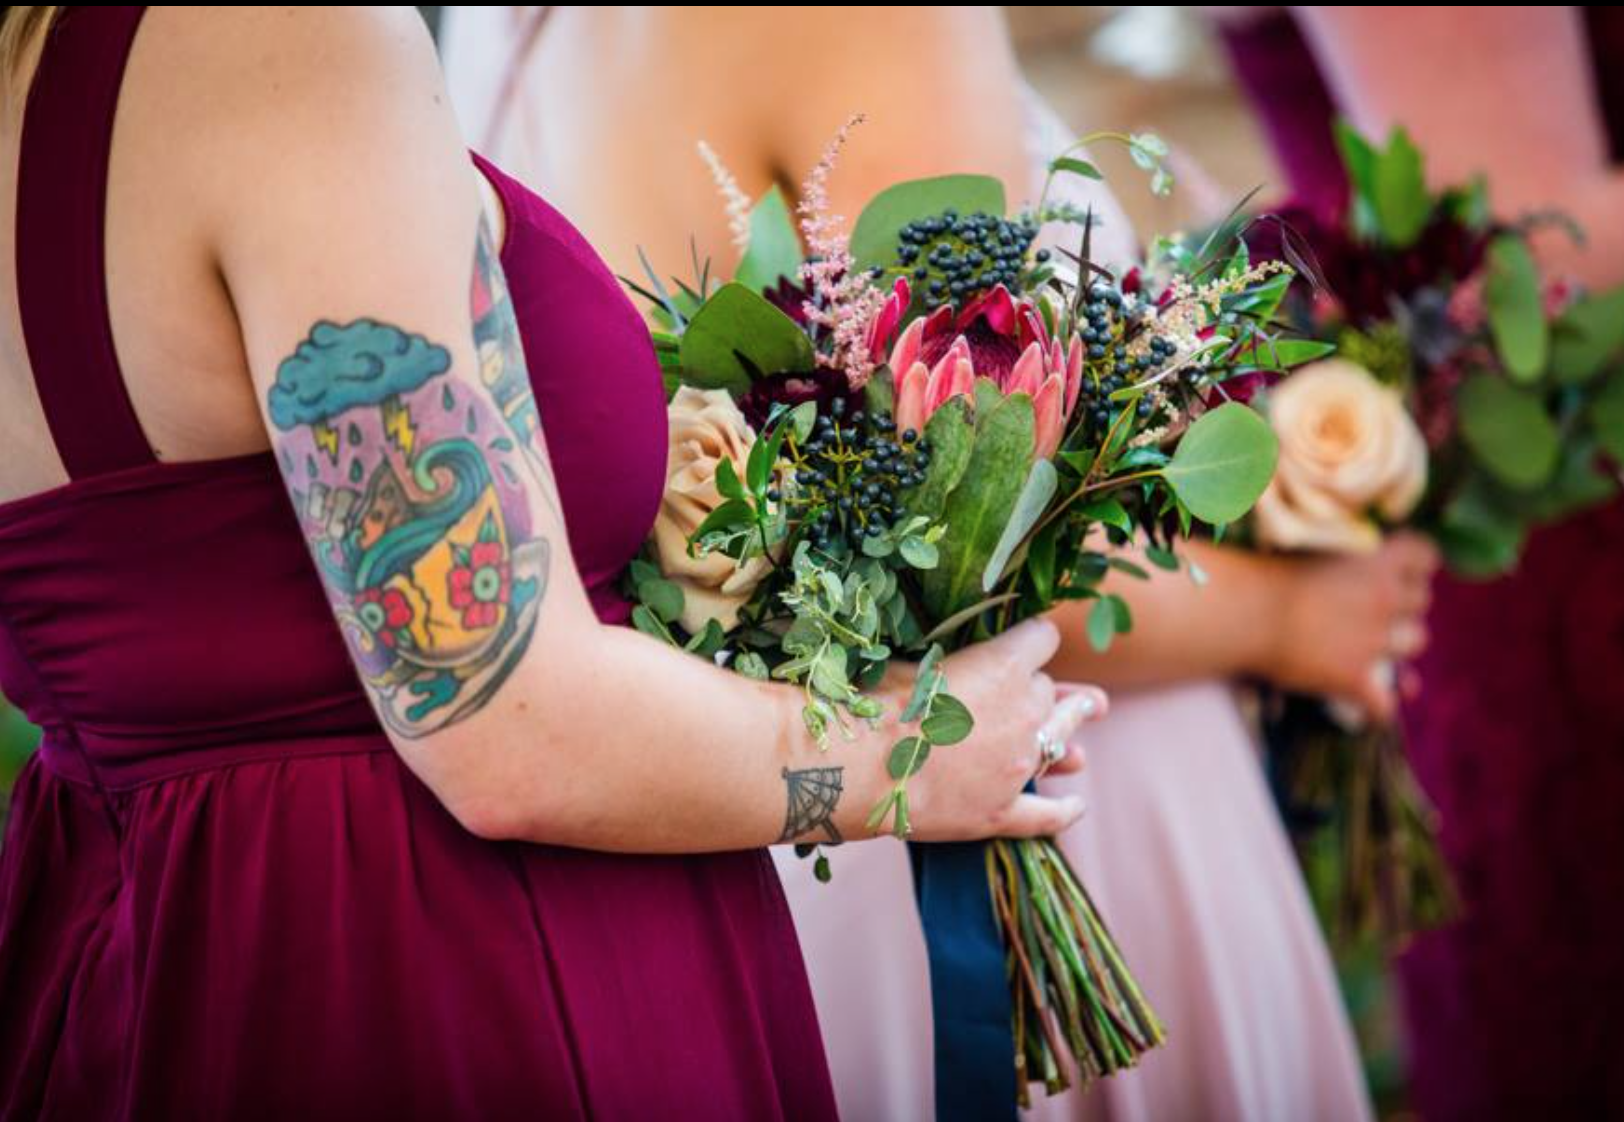 Be sure to add your favorite flowers. My daughter loves Protea and made sure to have them in her bouquets.